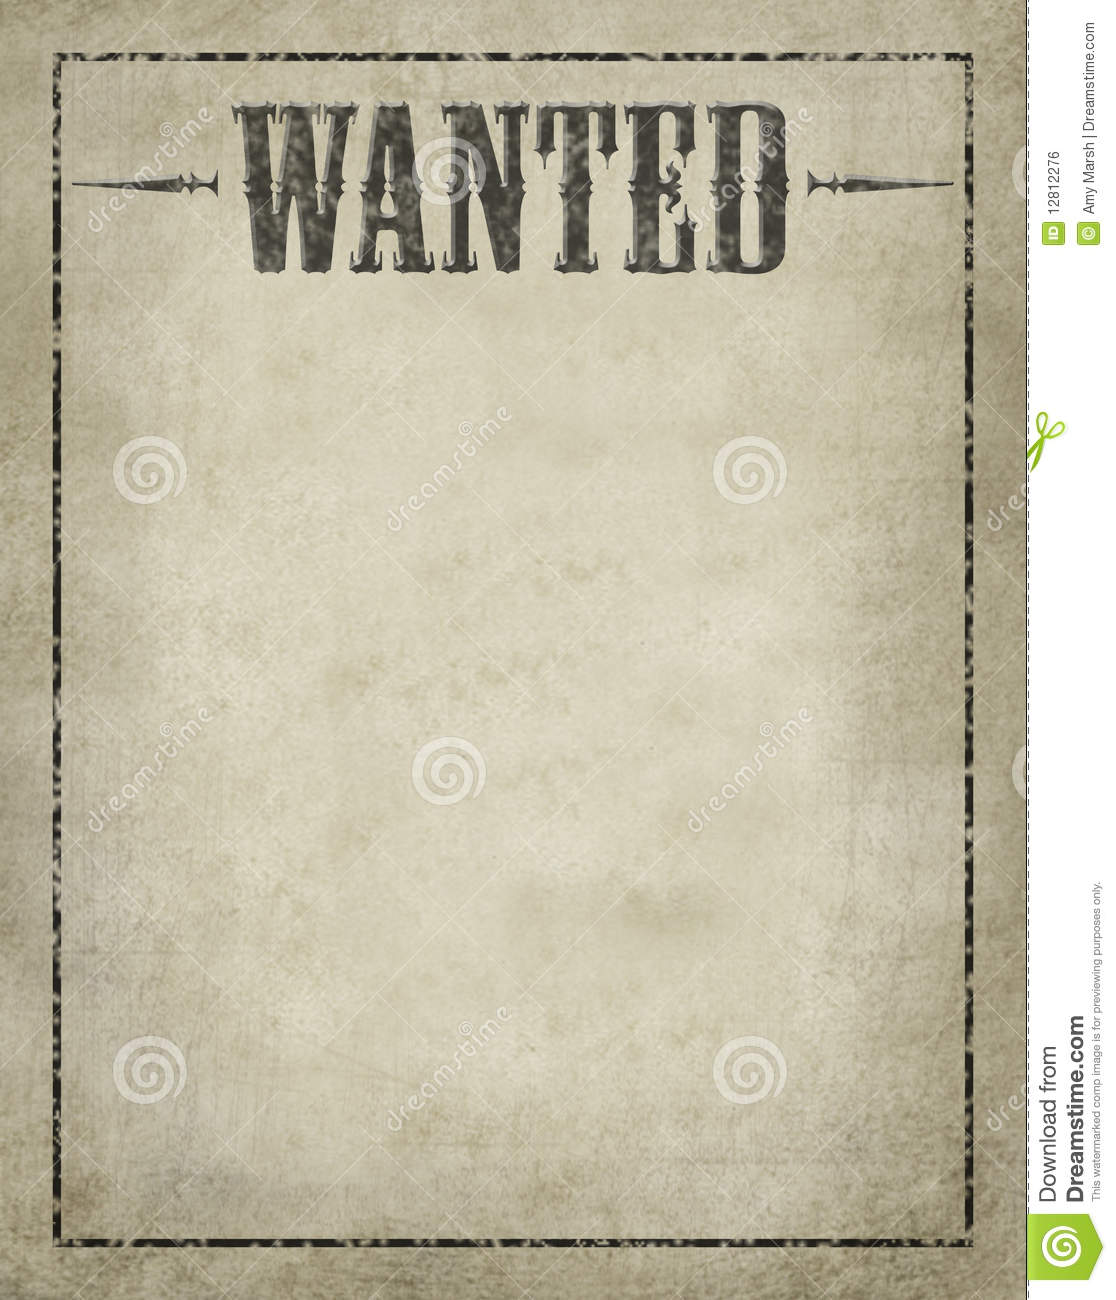 Fbi Wanted Template Blank Fbi Wanted Poster Template Wanted Poster Maxwellsz